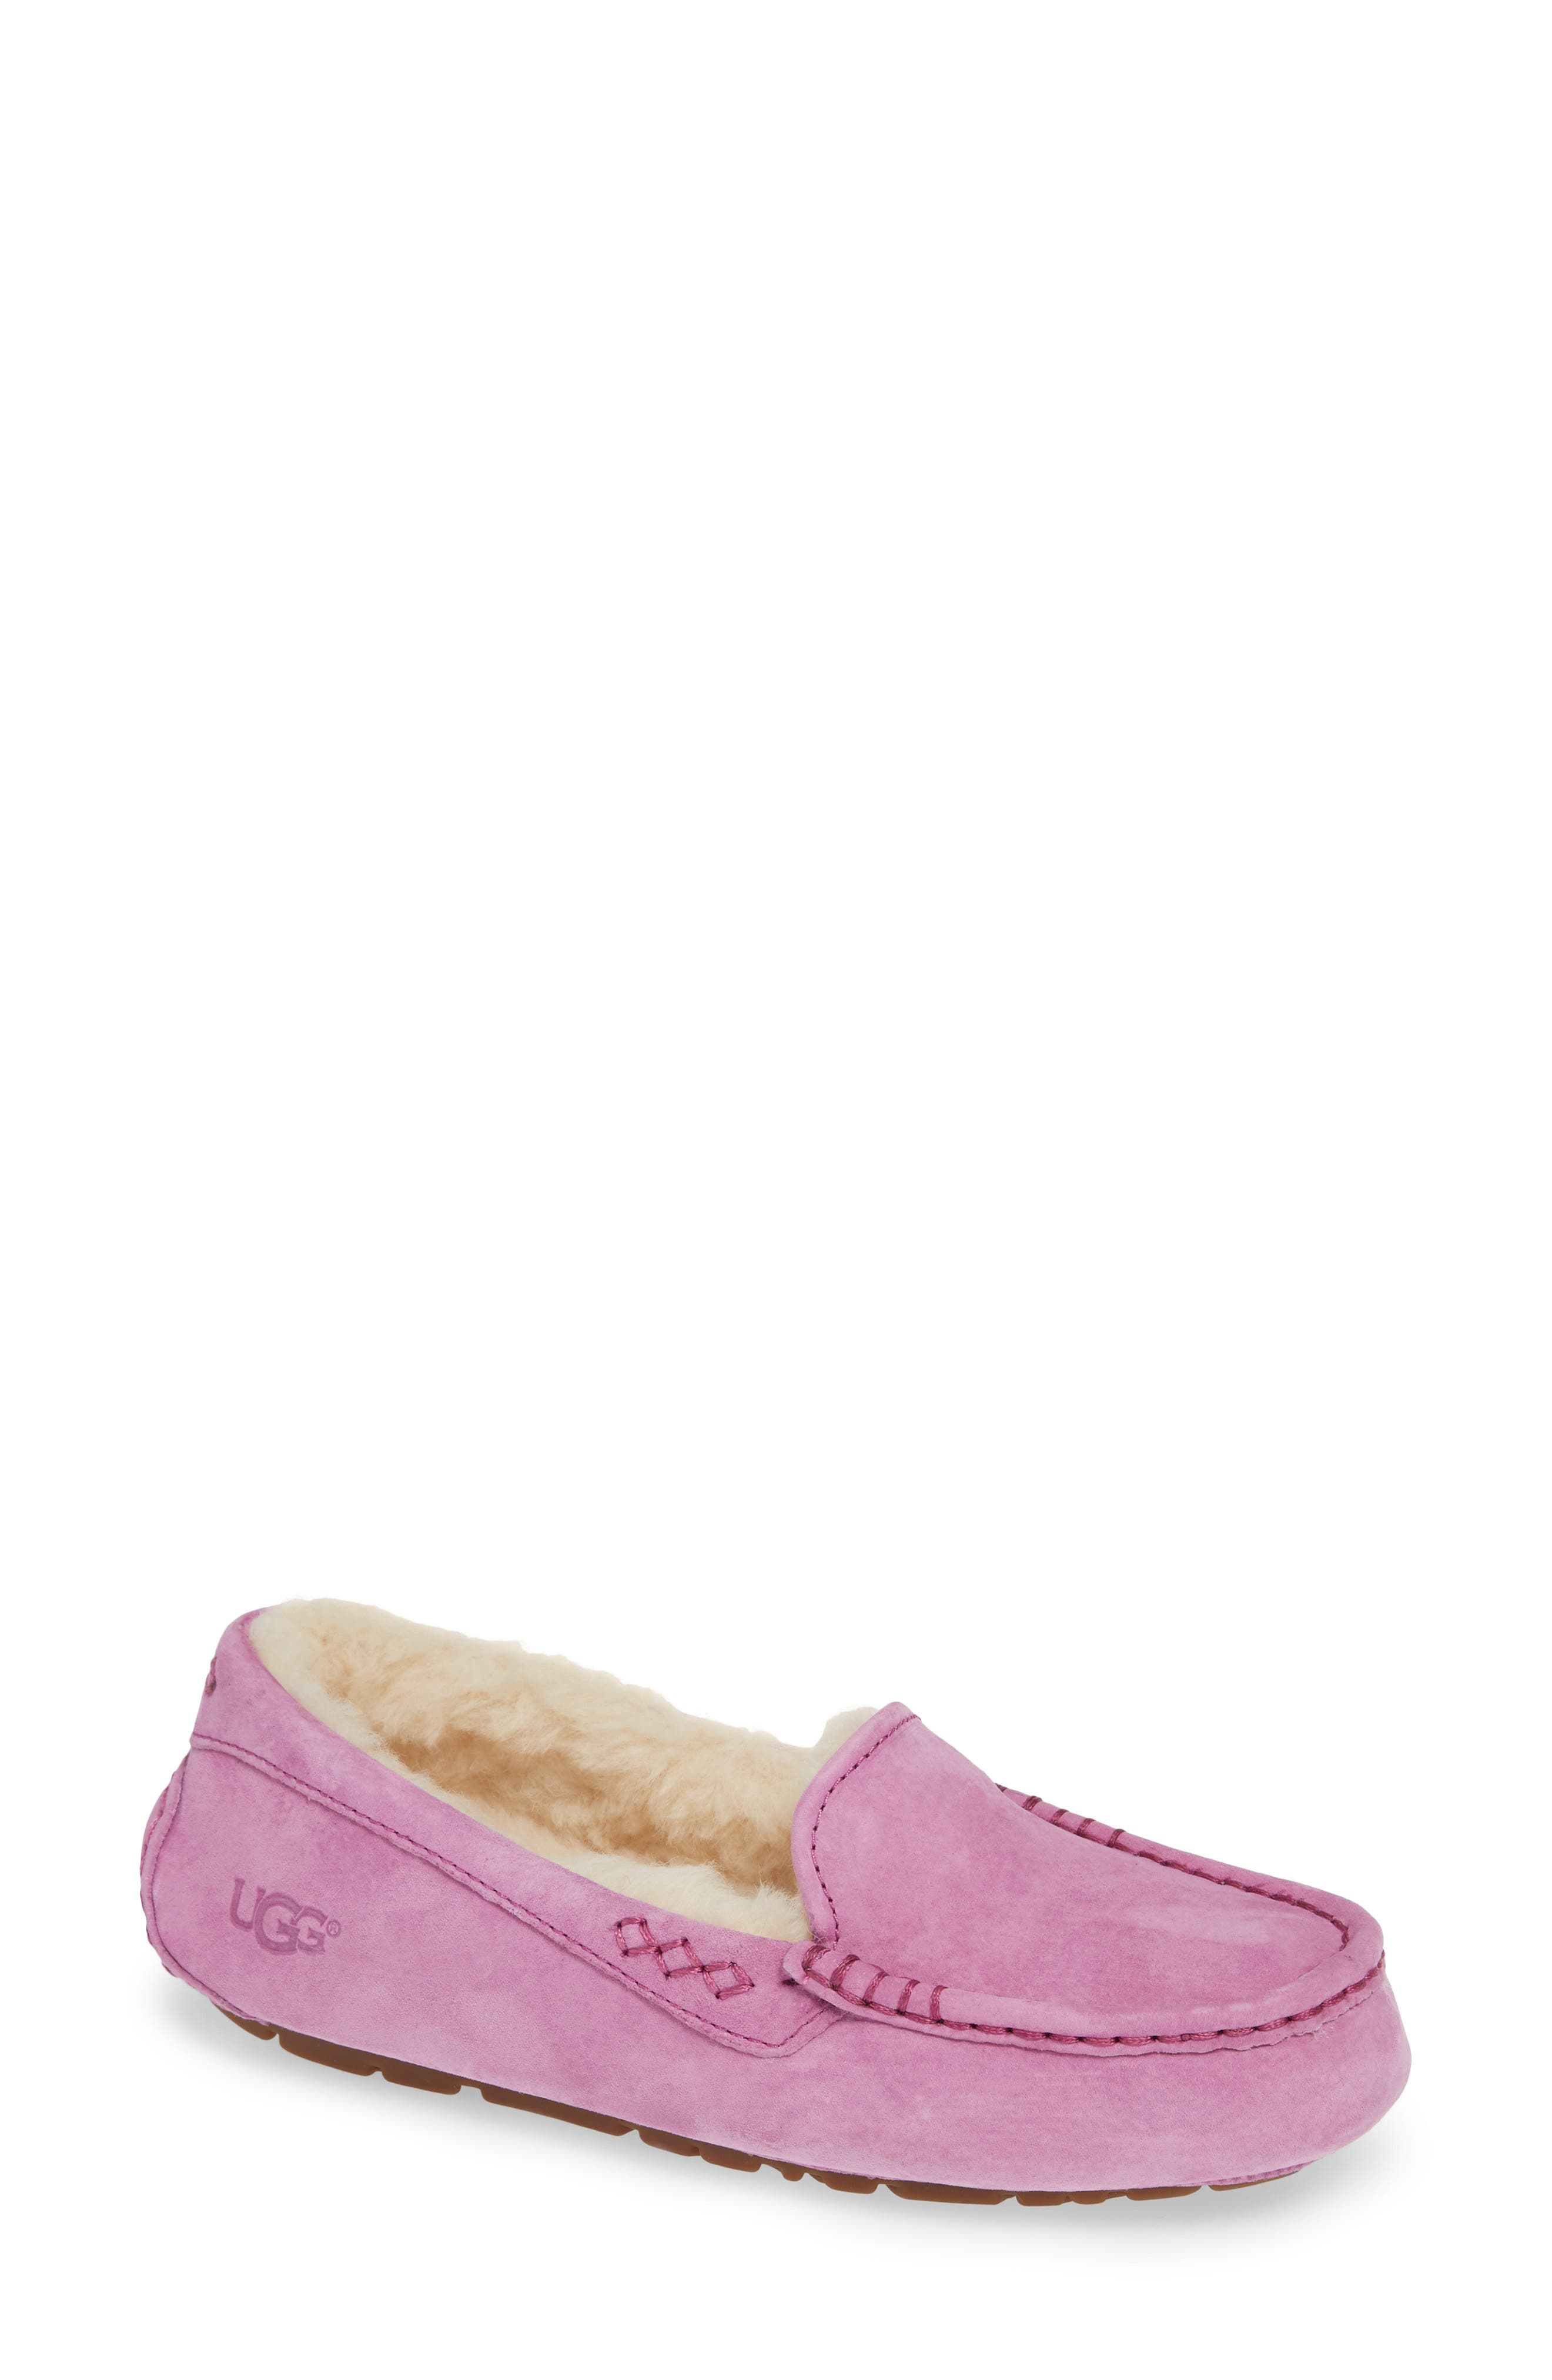 Ugg Ansley Water Resistant Slipper, Purple